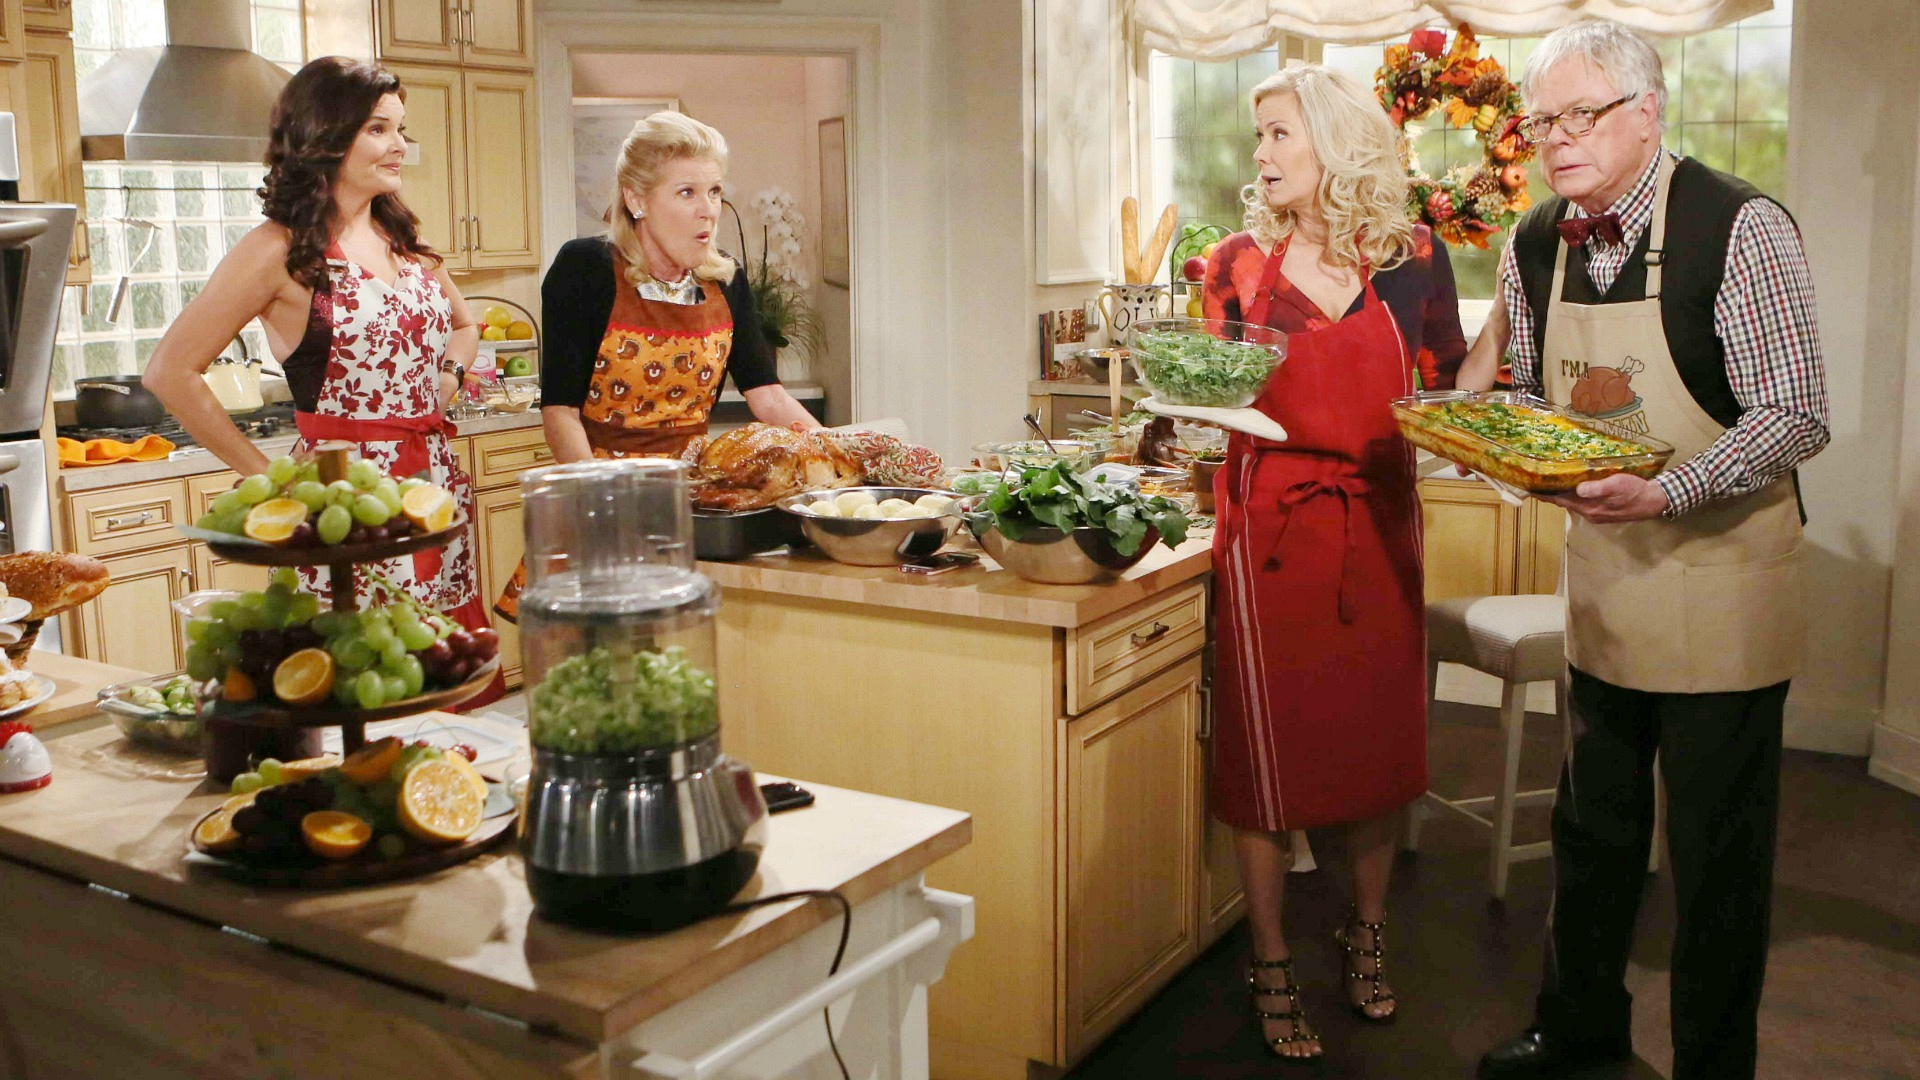 Pam, Charlie, Katie, and Brooke all endure chaos in the kitchen as they prepare the Thanksgiving meal.